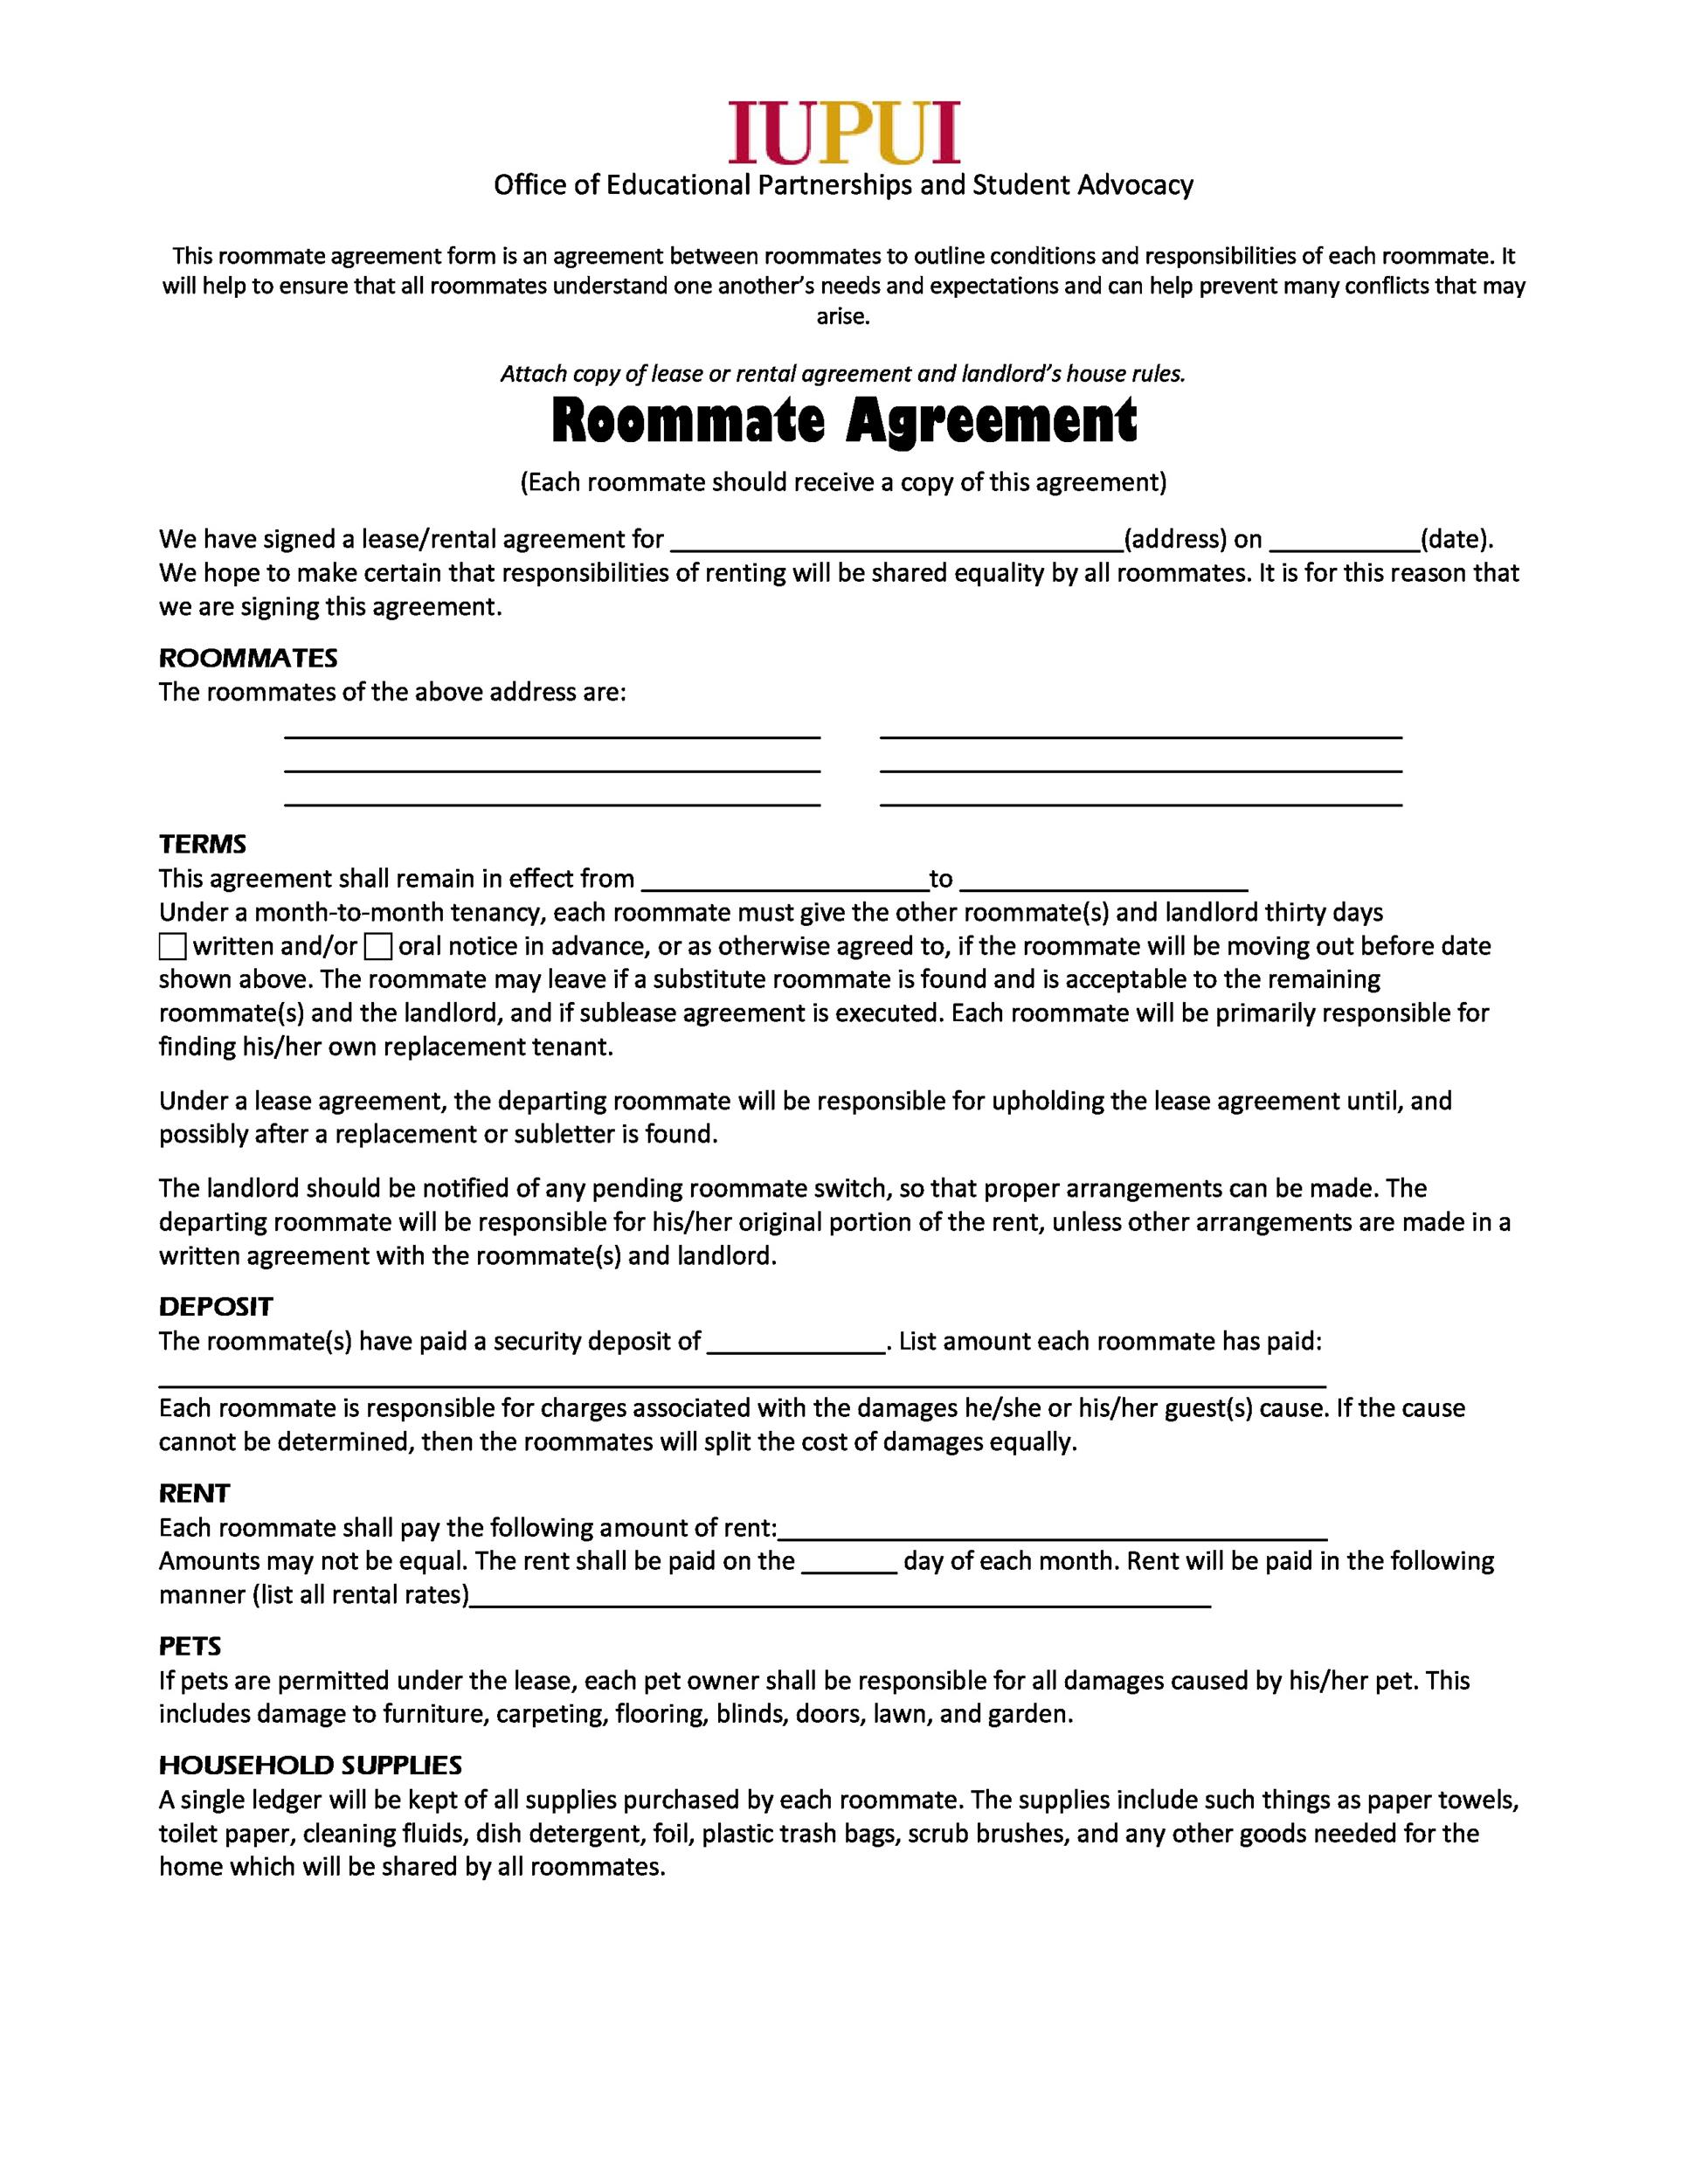 40 Free Roommate Agreement Templates Forms Word PDF – Agreement